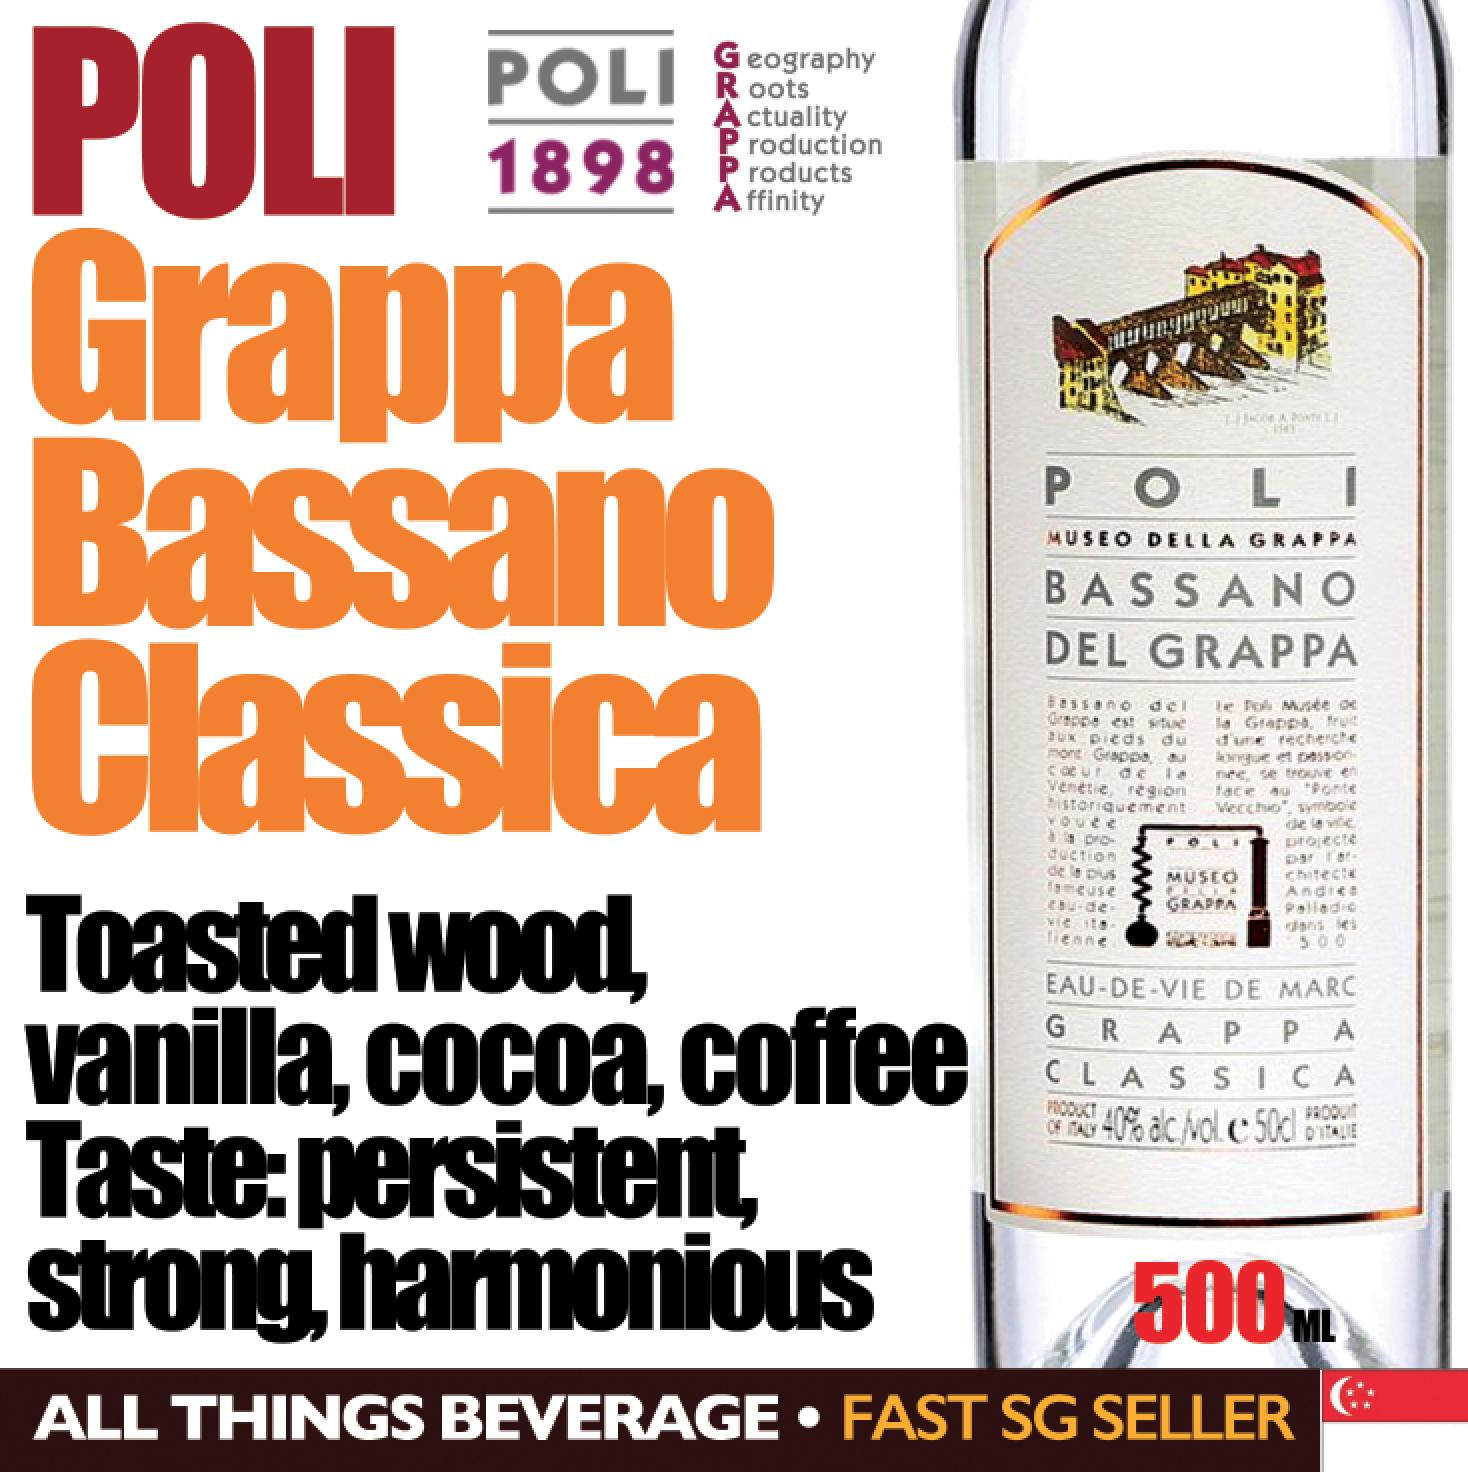 Poli Grappa Bassano Classico By All Things Beverage.